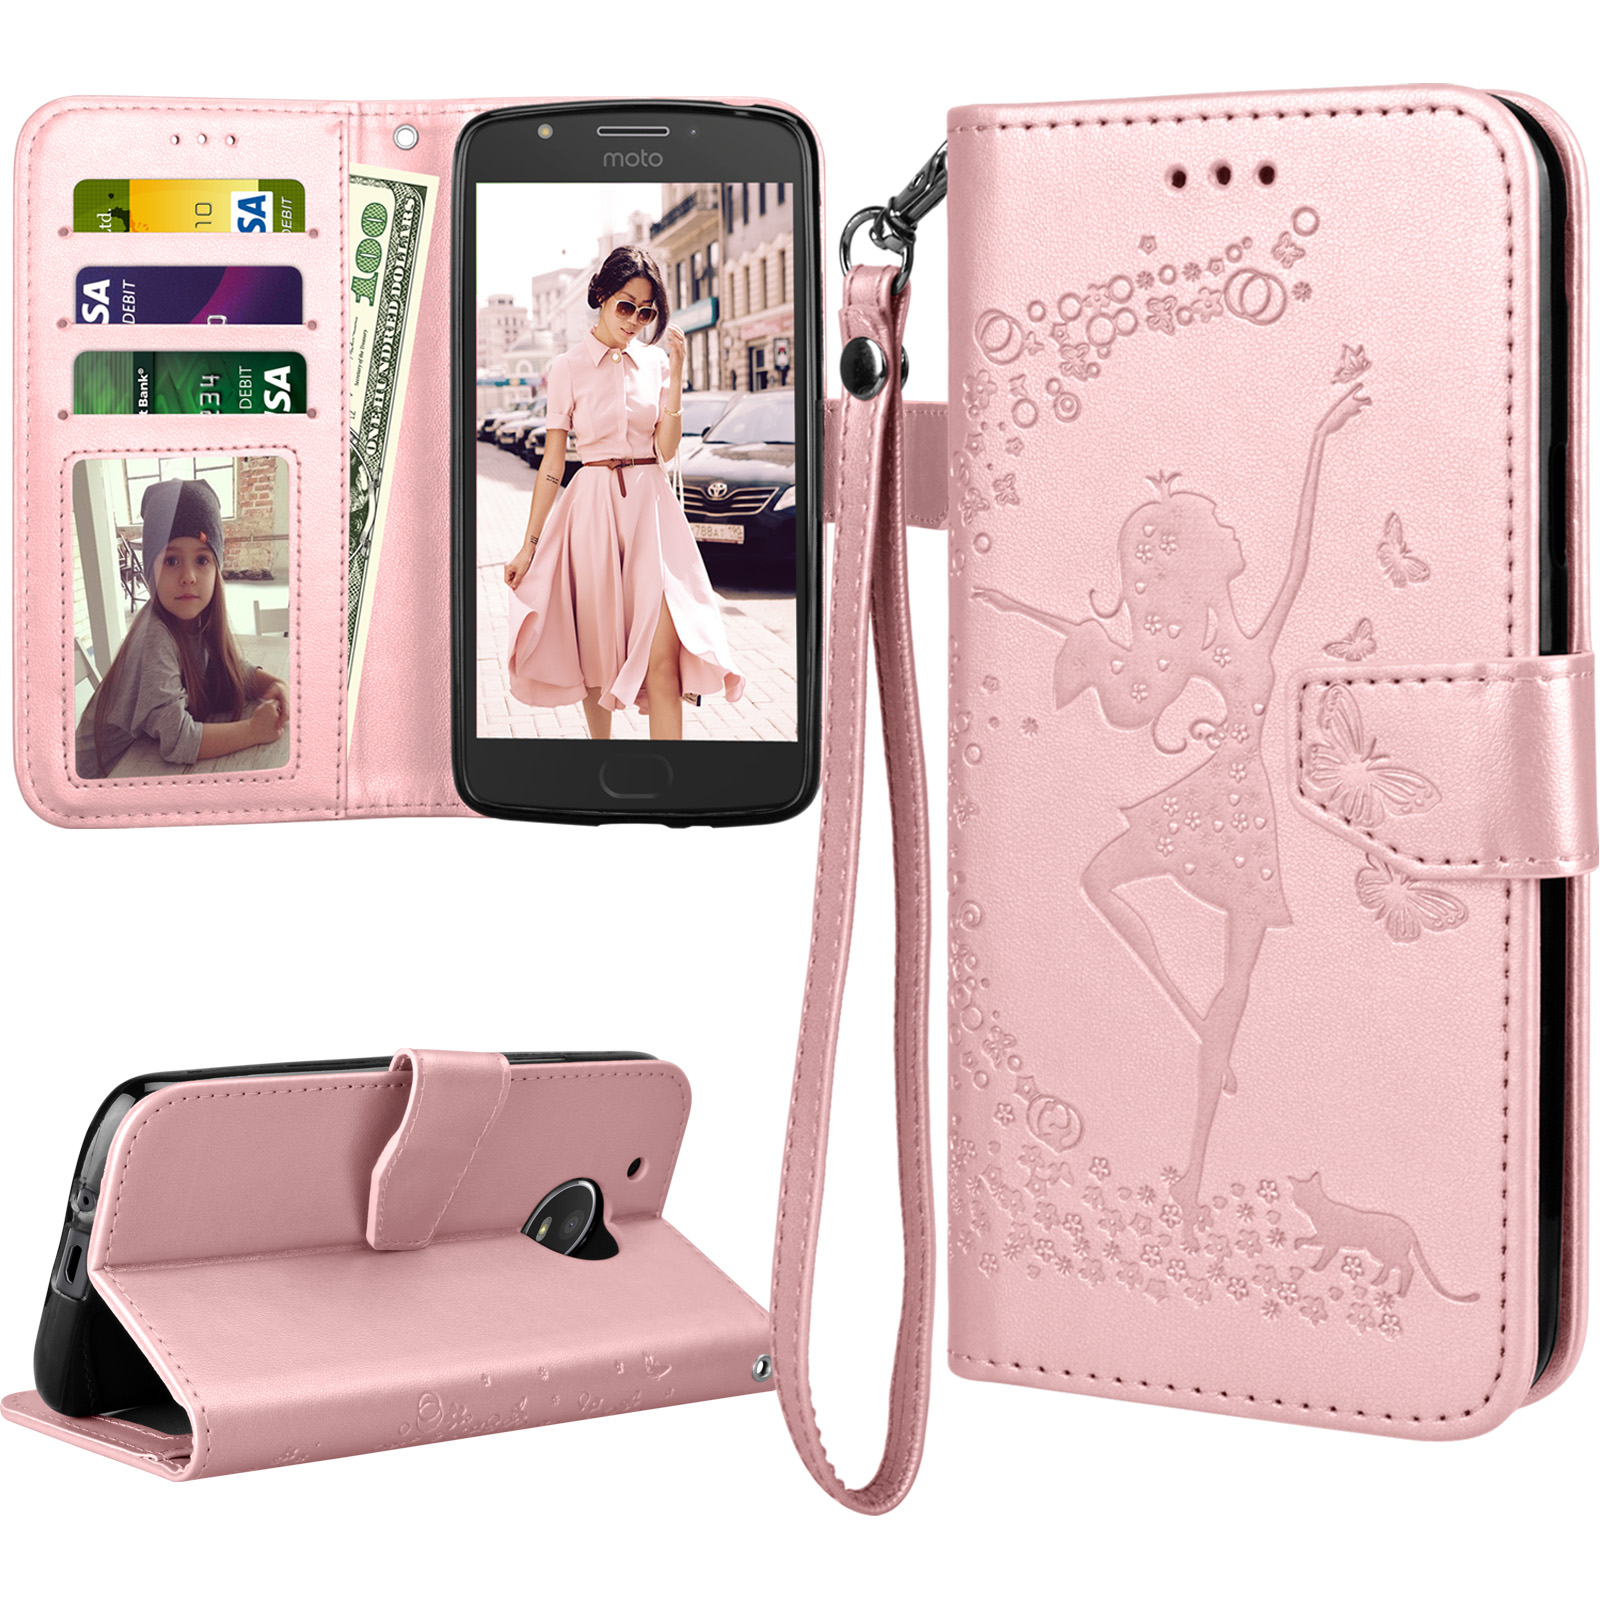 new styles 36c67 98a2f Moto E4 Case For Girls, 2017 Motorola Moto E 4th Generation Flip Cover,  Tekcoo Luxury PU Leather [Rose Gold] Wallet ID Cash Credit Card Slots  Holder ...